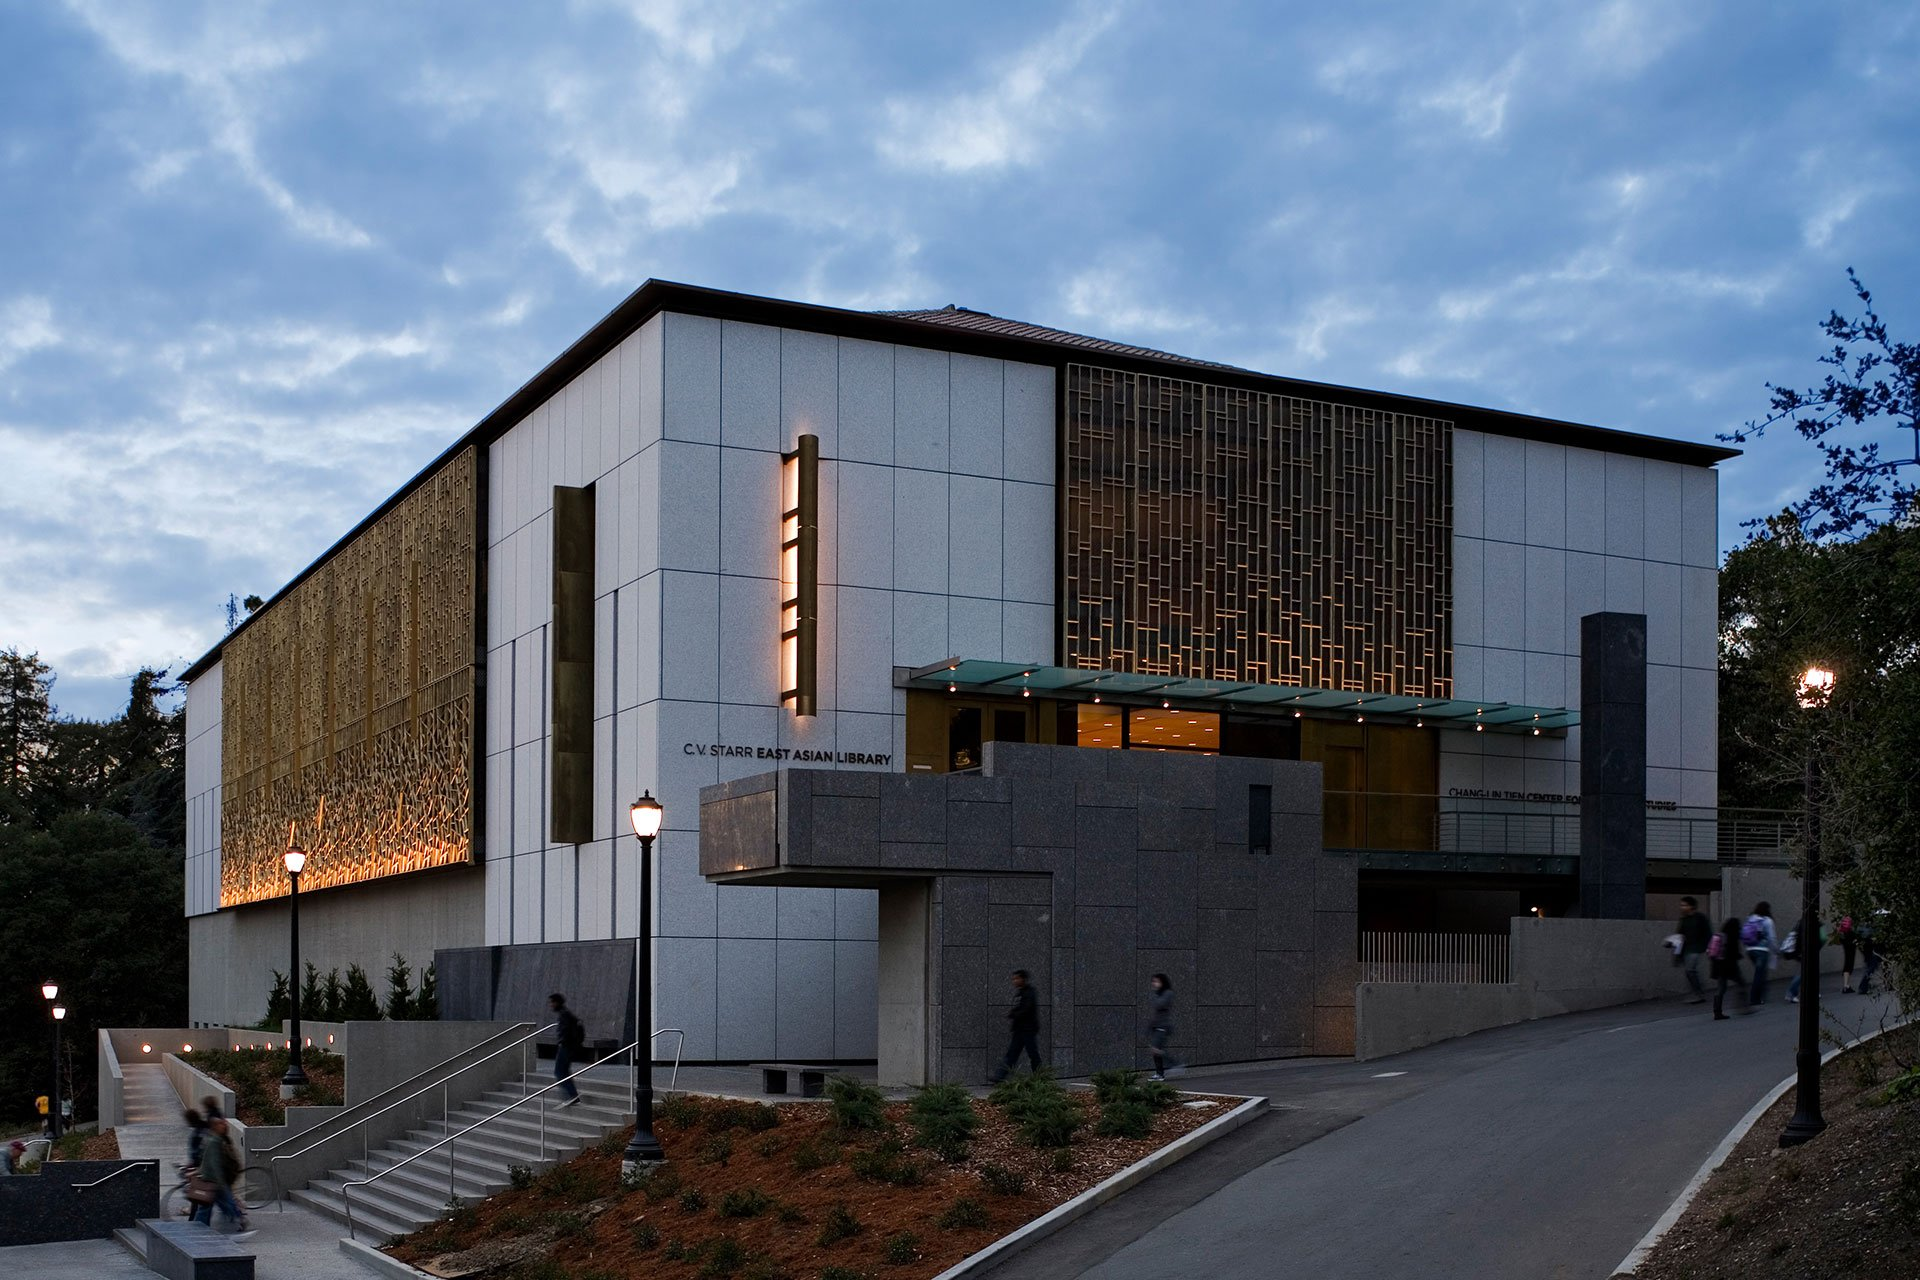 C.V. Starr East Asian Library side exterior OVI architectural lighting design